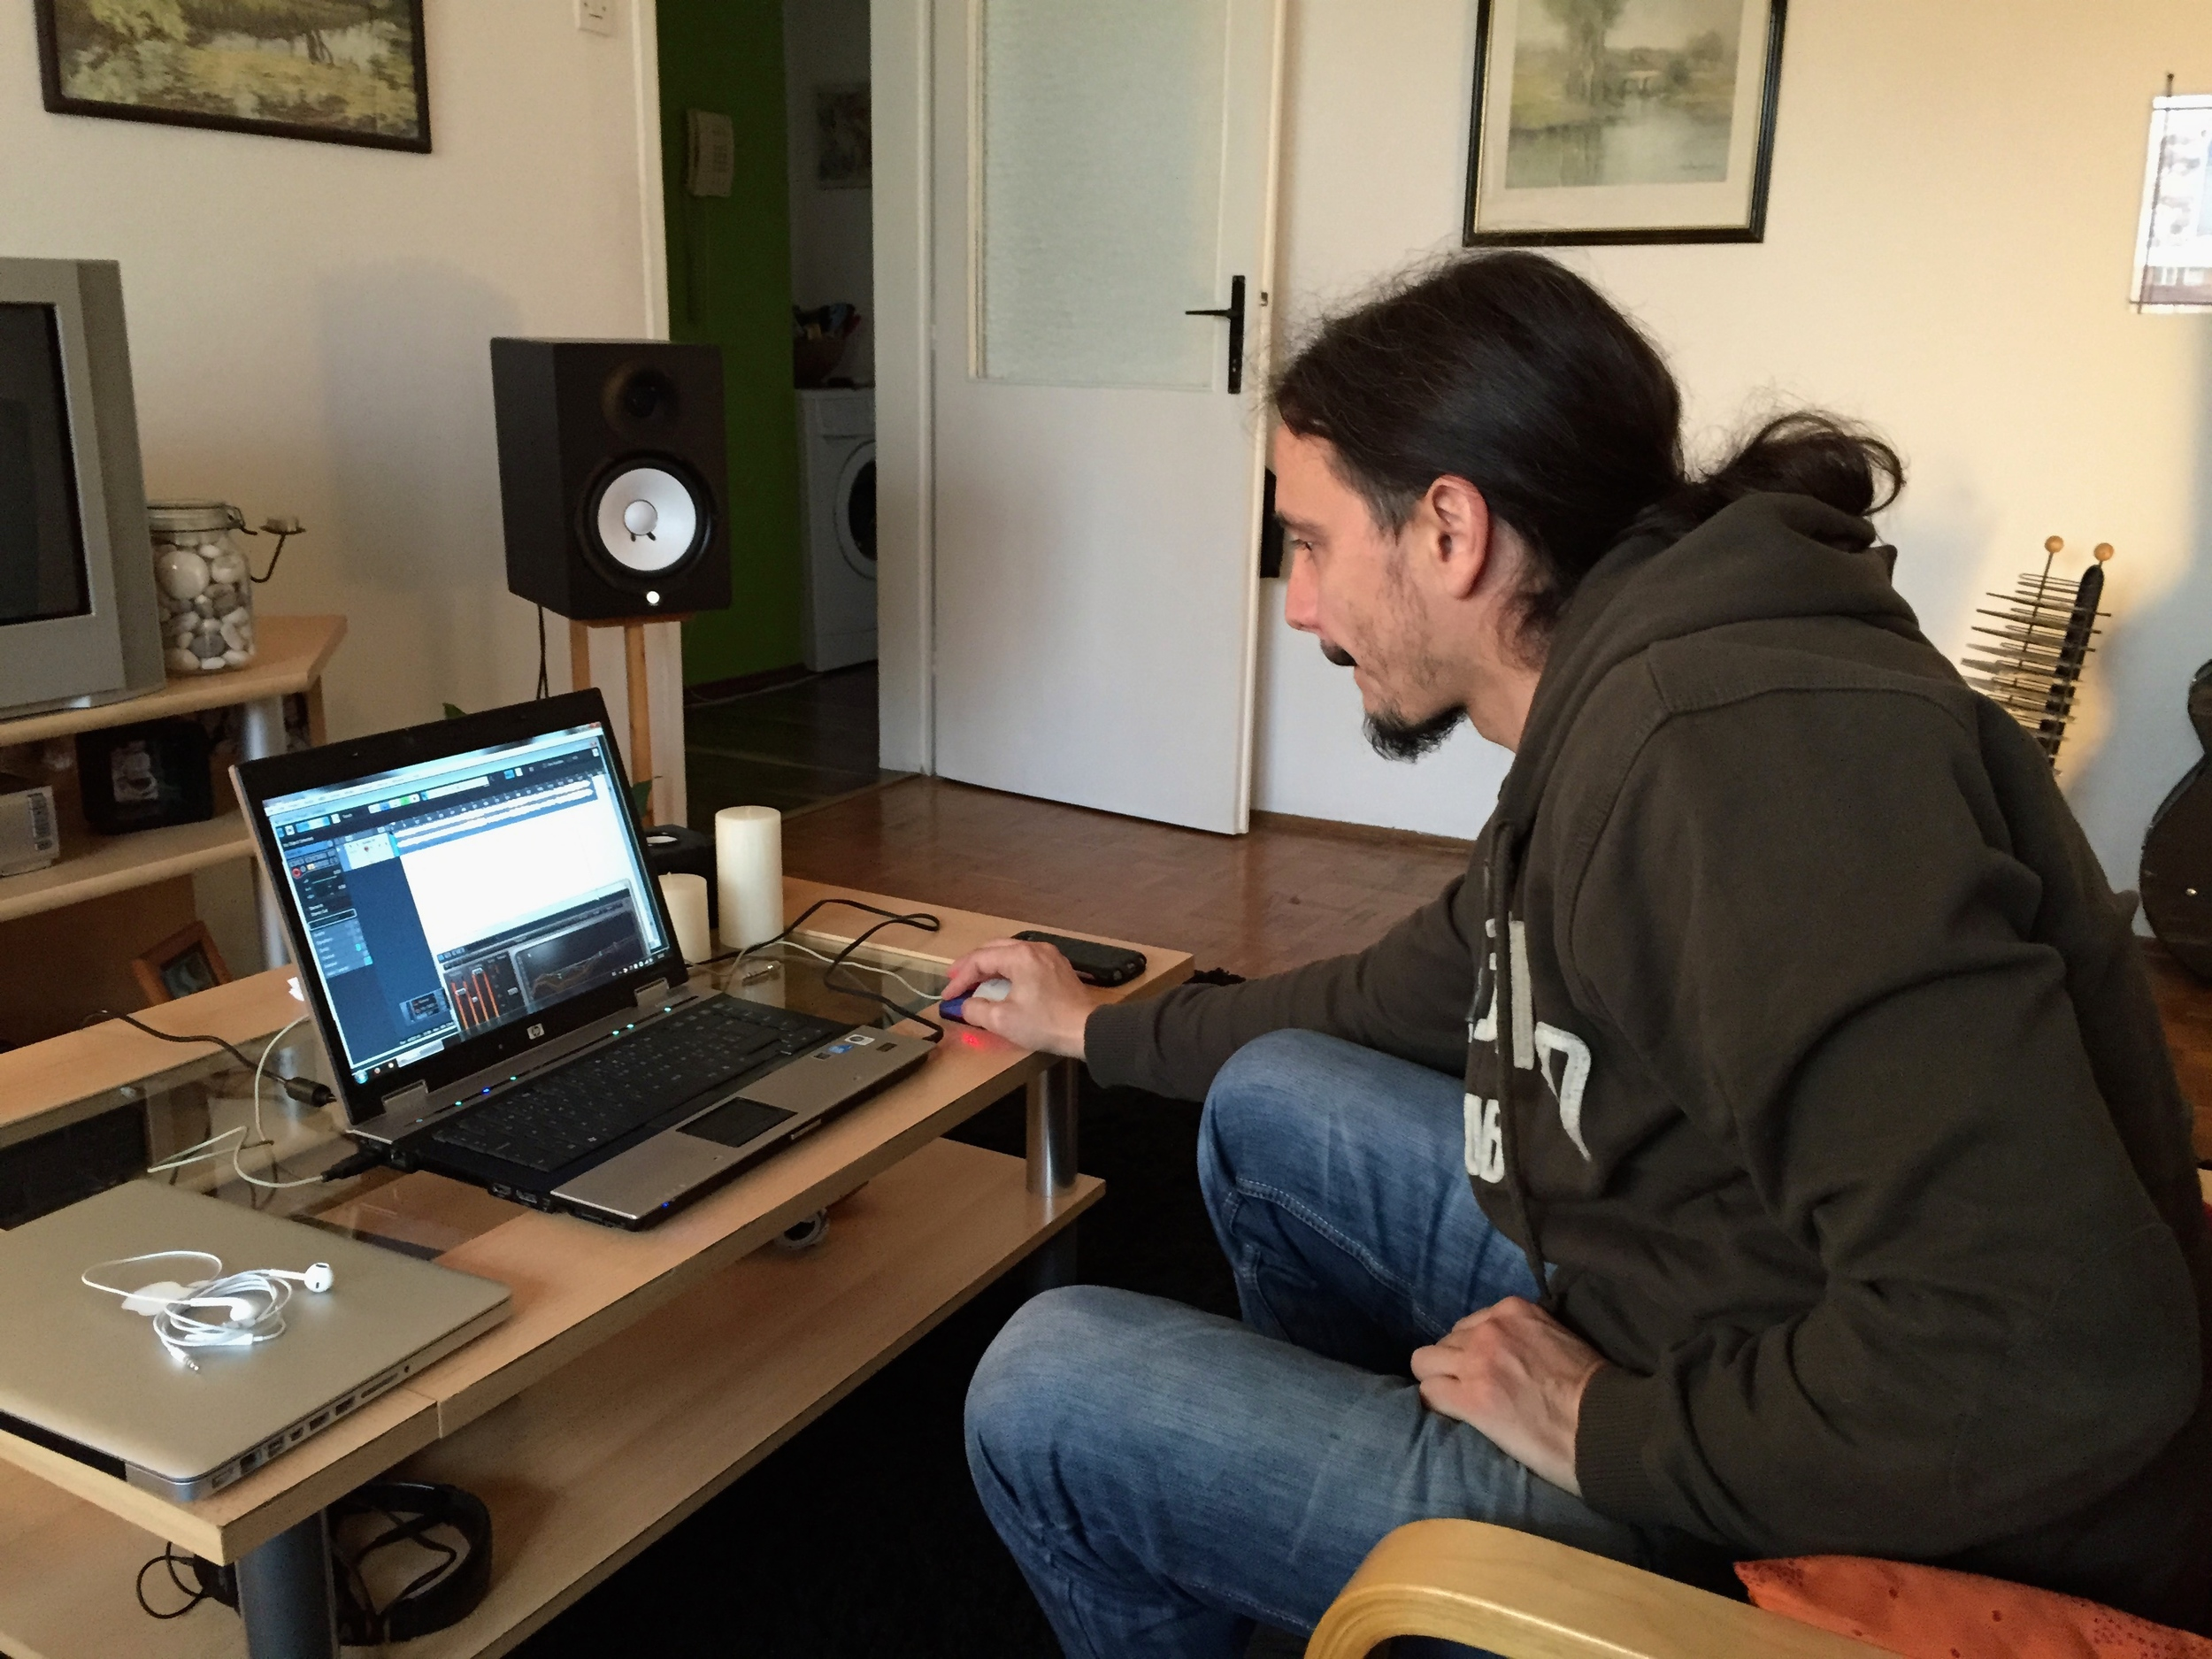 Neno working on the recording for a music video.